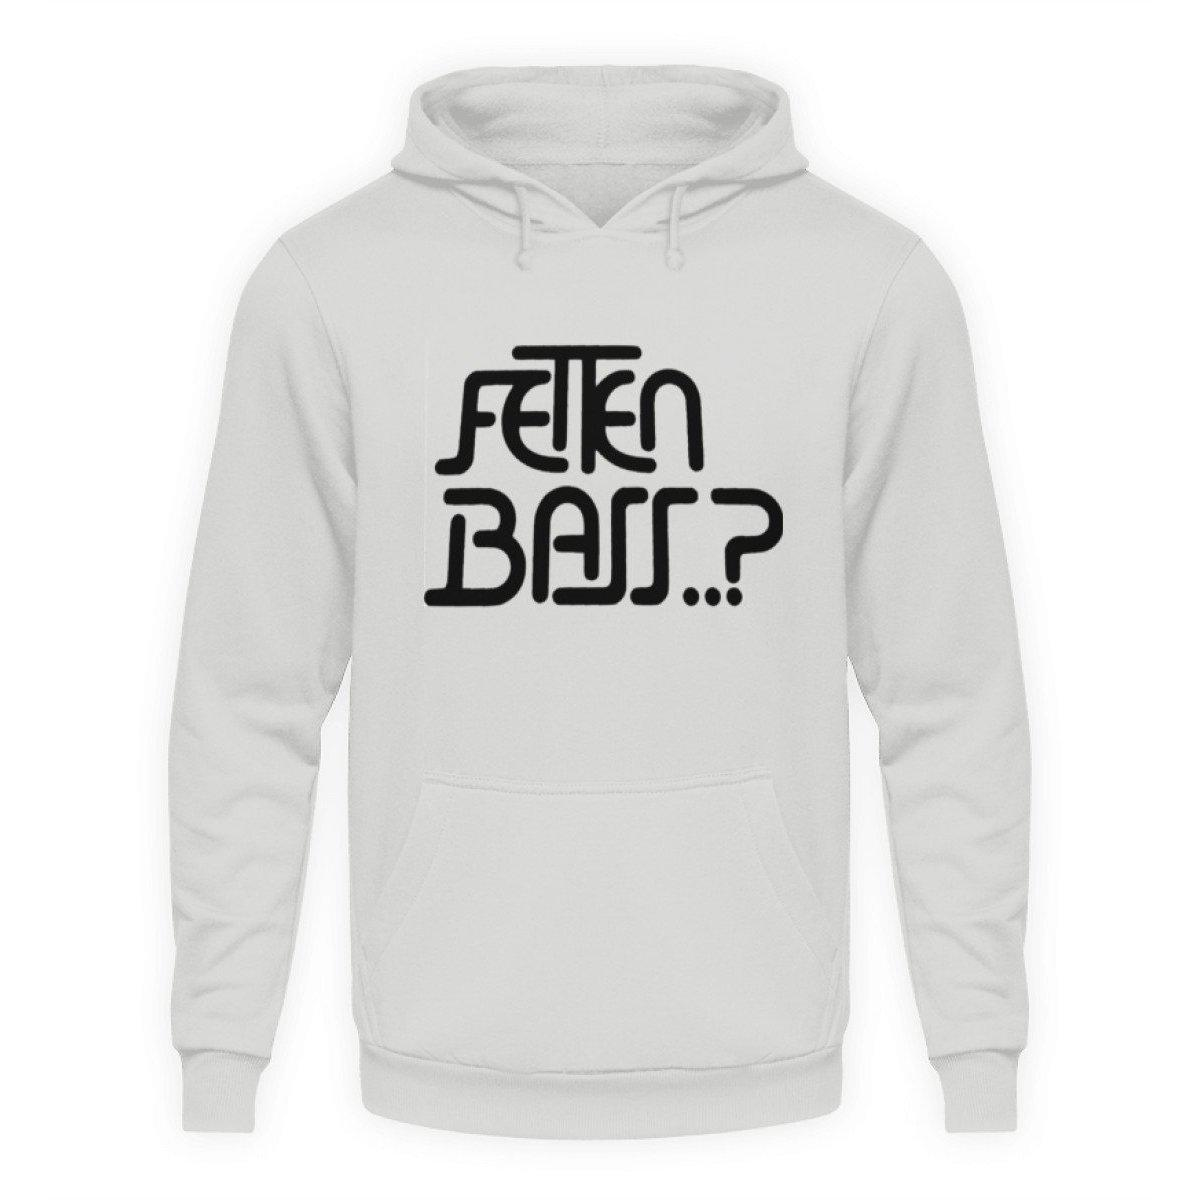 FETTEN BASS..? Rave On!® - Unisex Kapuzenpullover Hoodie Unisex Hoodie - Rave On!® der Club & Techno Szene Shop für Coole Junge Mode Streetwear Style & Fashion Outfits + Sexy Festival 420 Stuff